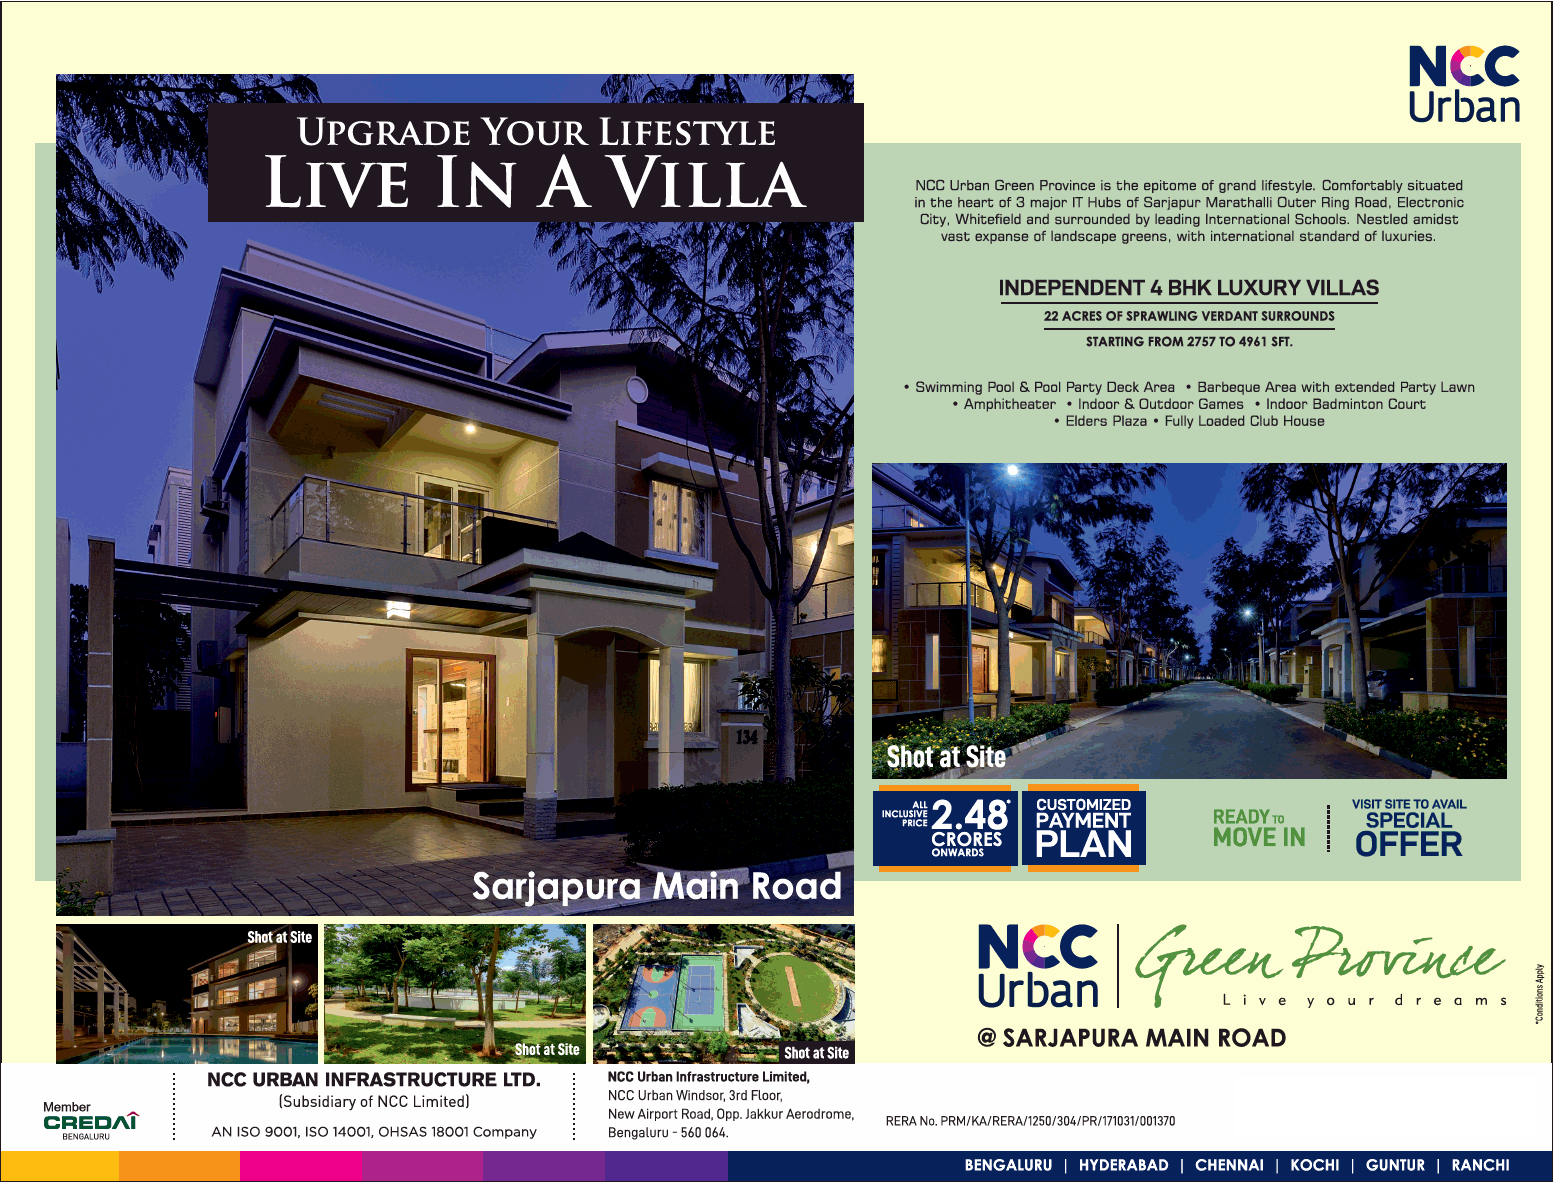 Independent 4 BHK luxury villa at NCC Urban Green Province in Bangalore